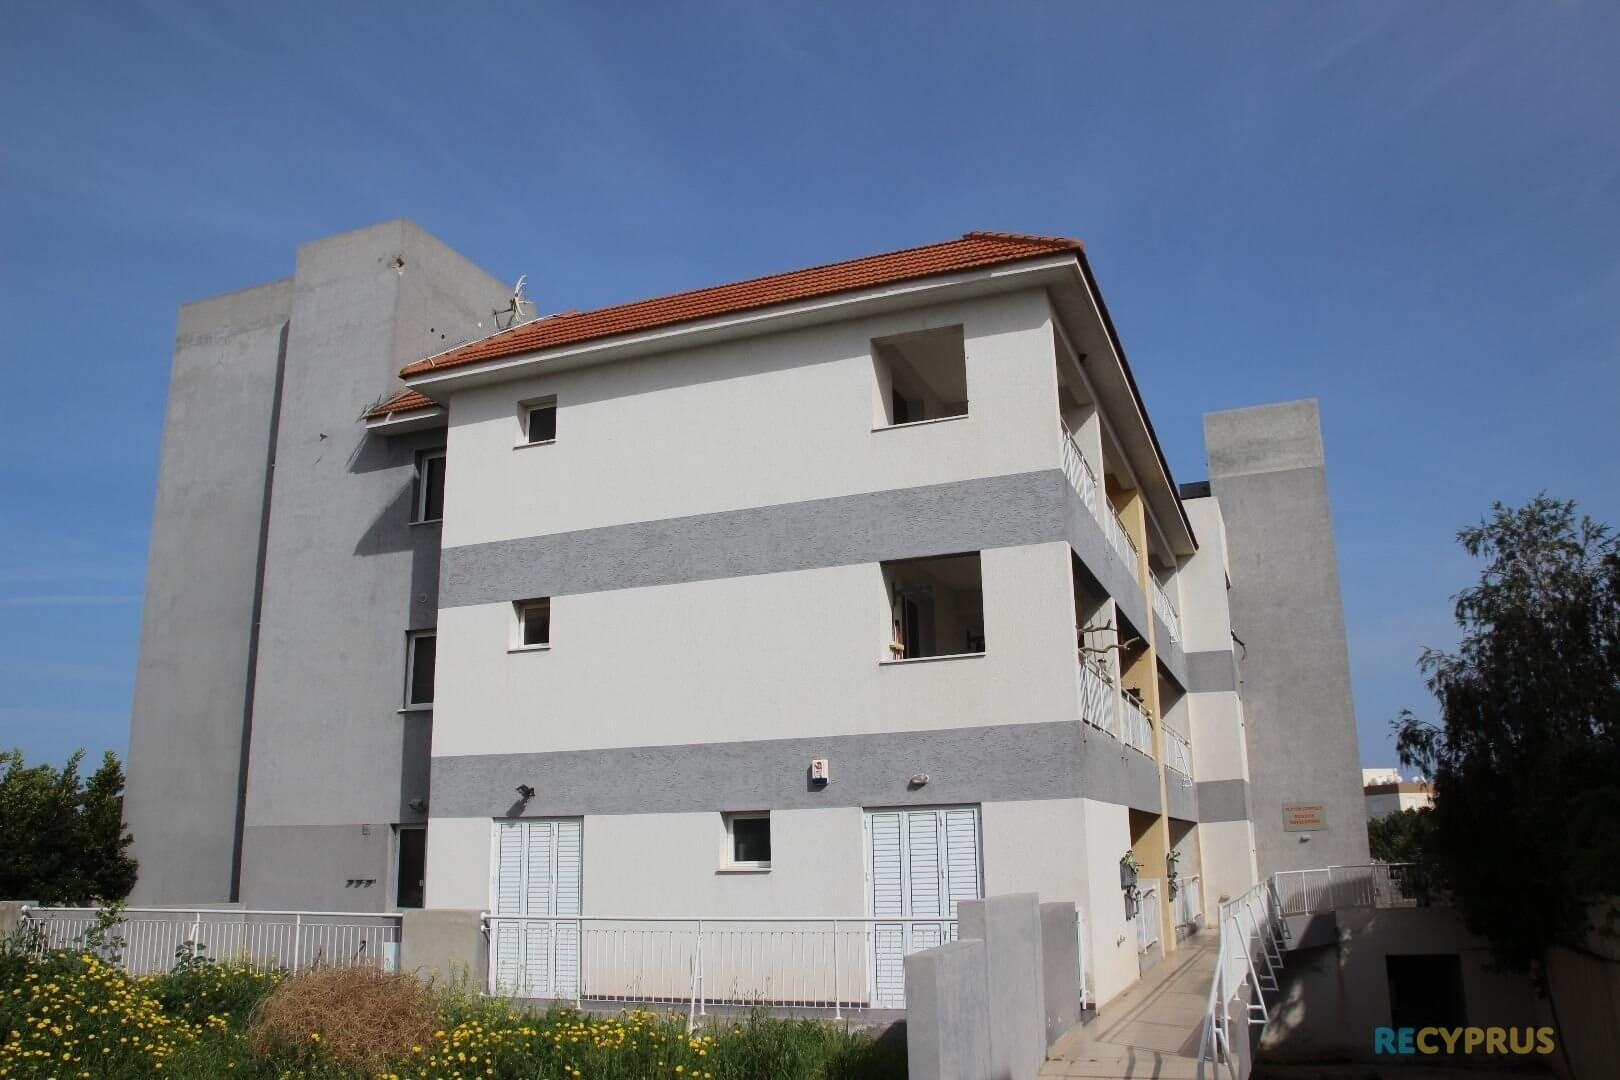 Apartment for sale Kapparis Famagusta Cyprus 1 3519